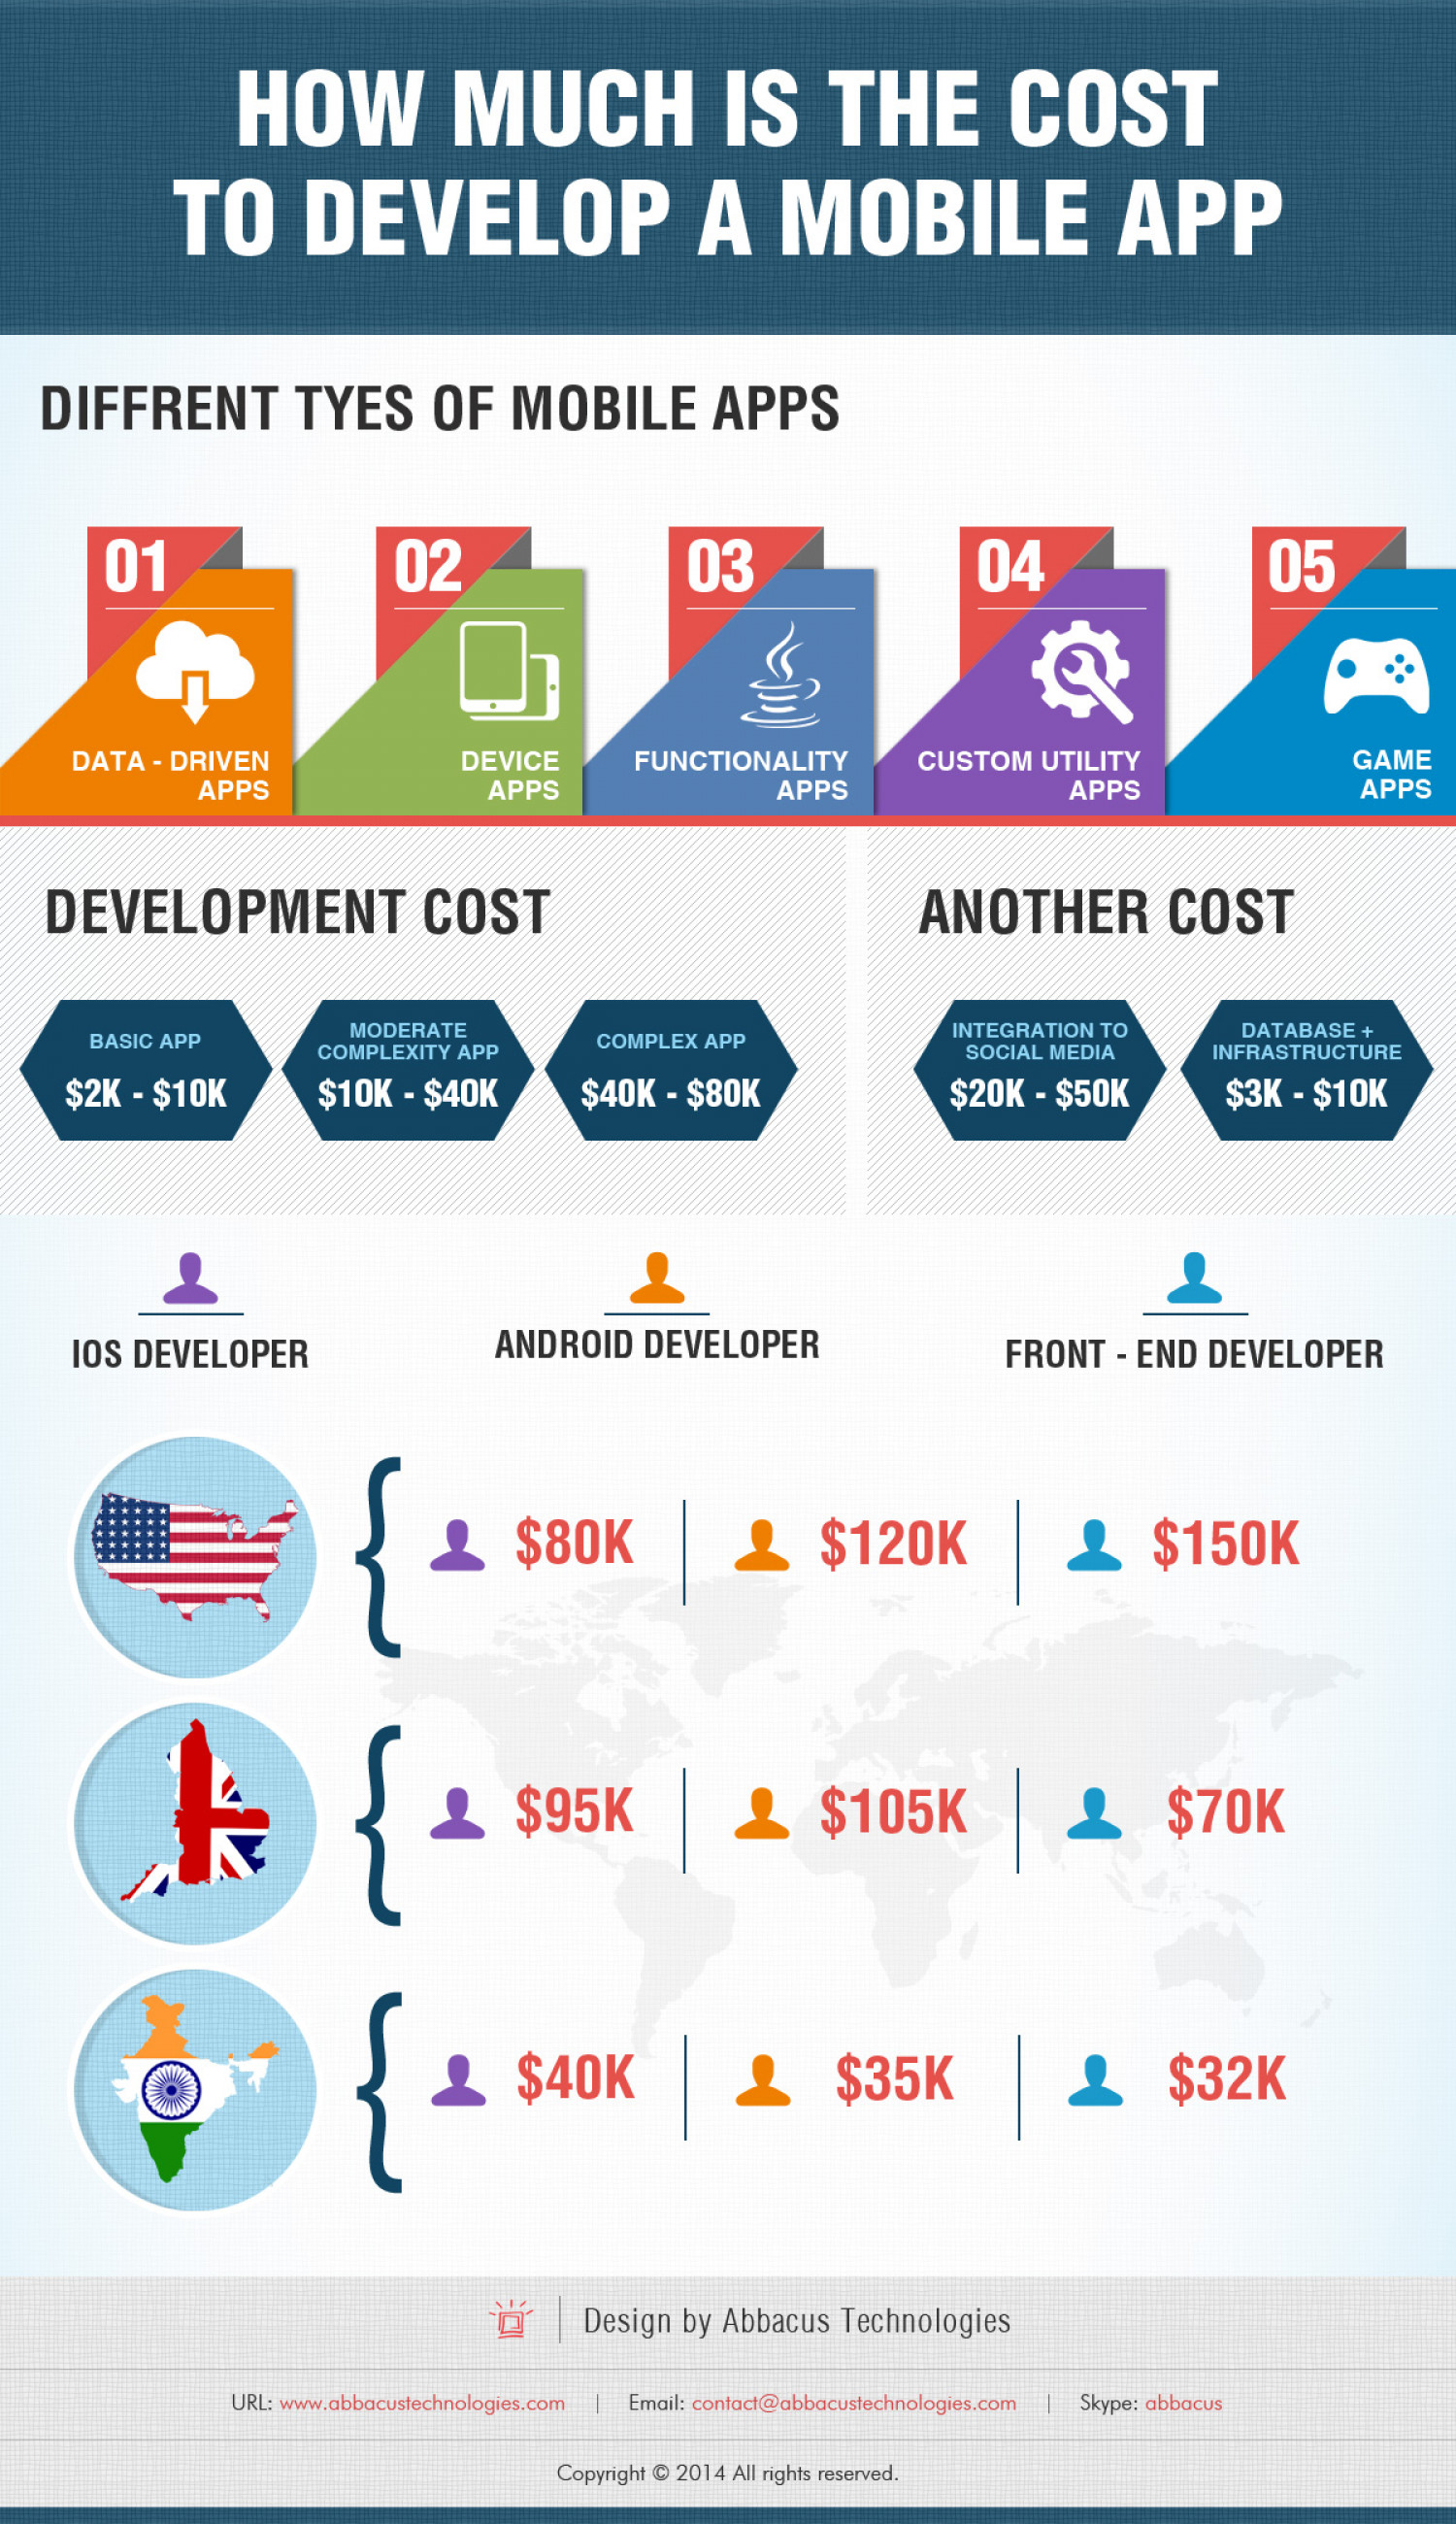 How Much isthe Cost to Develop a Mobile App Infographic